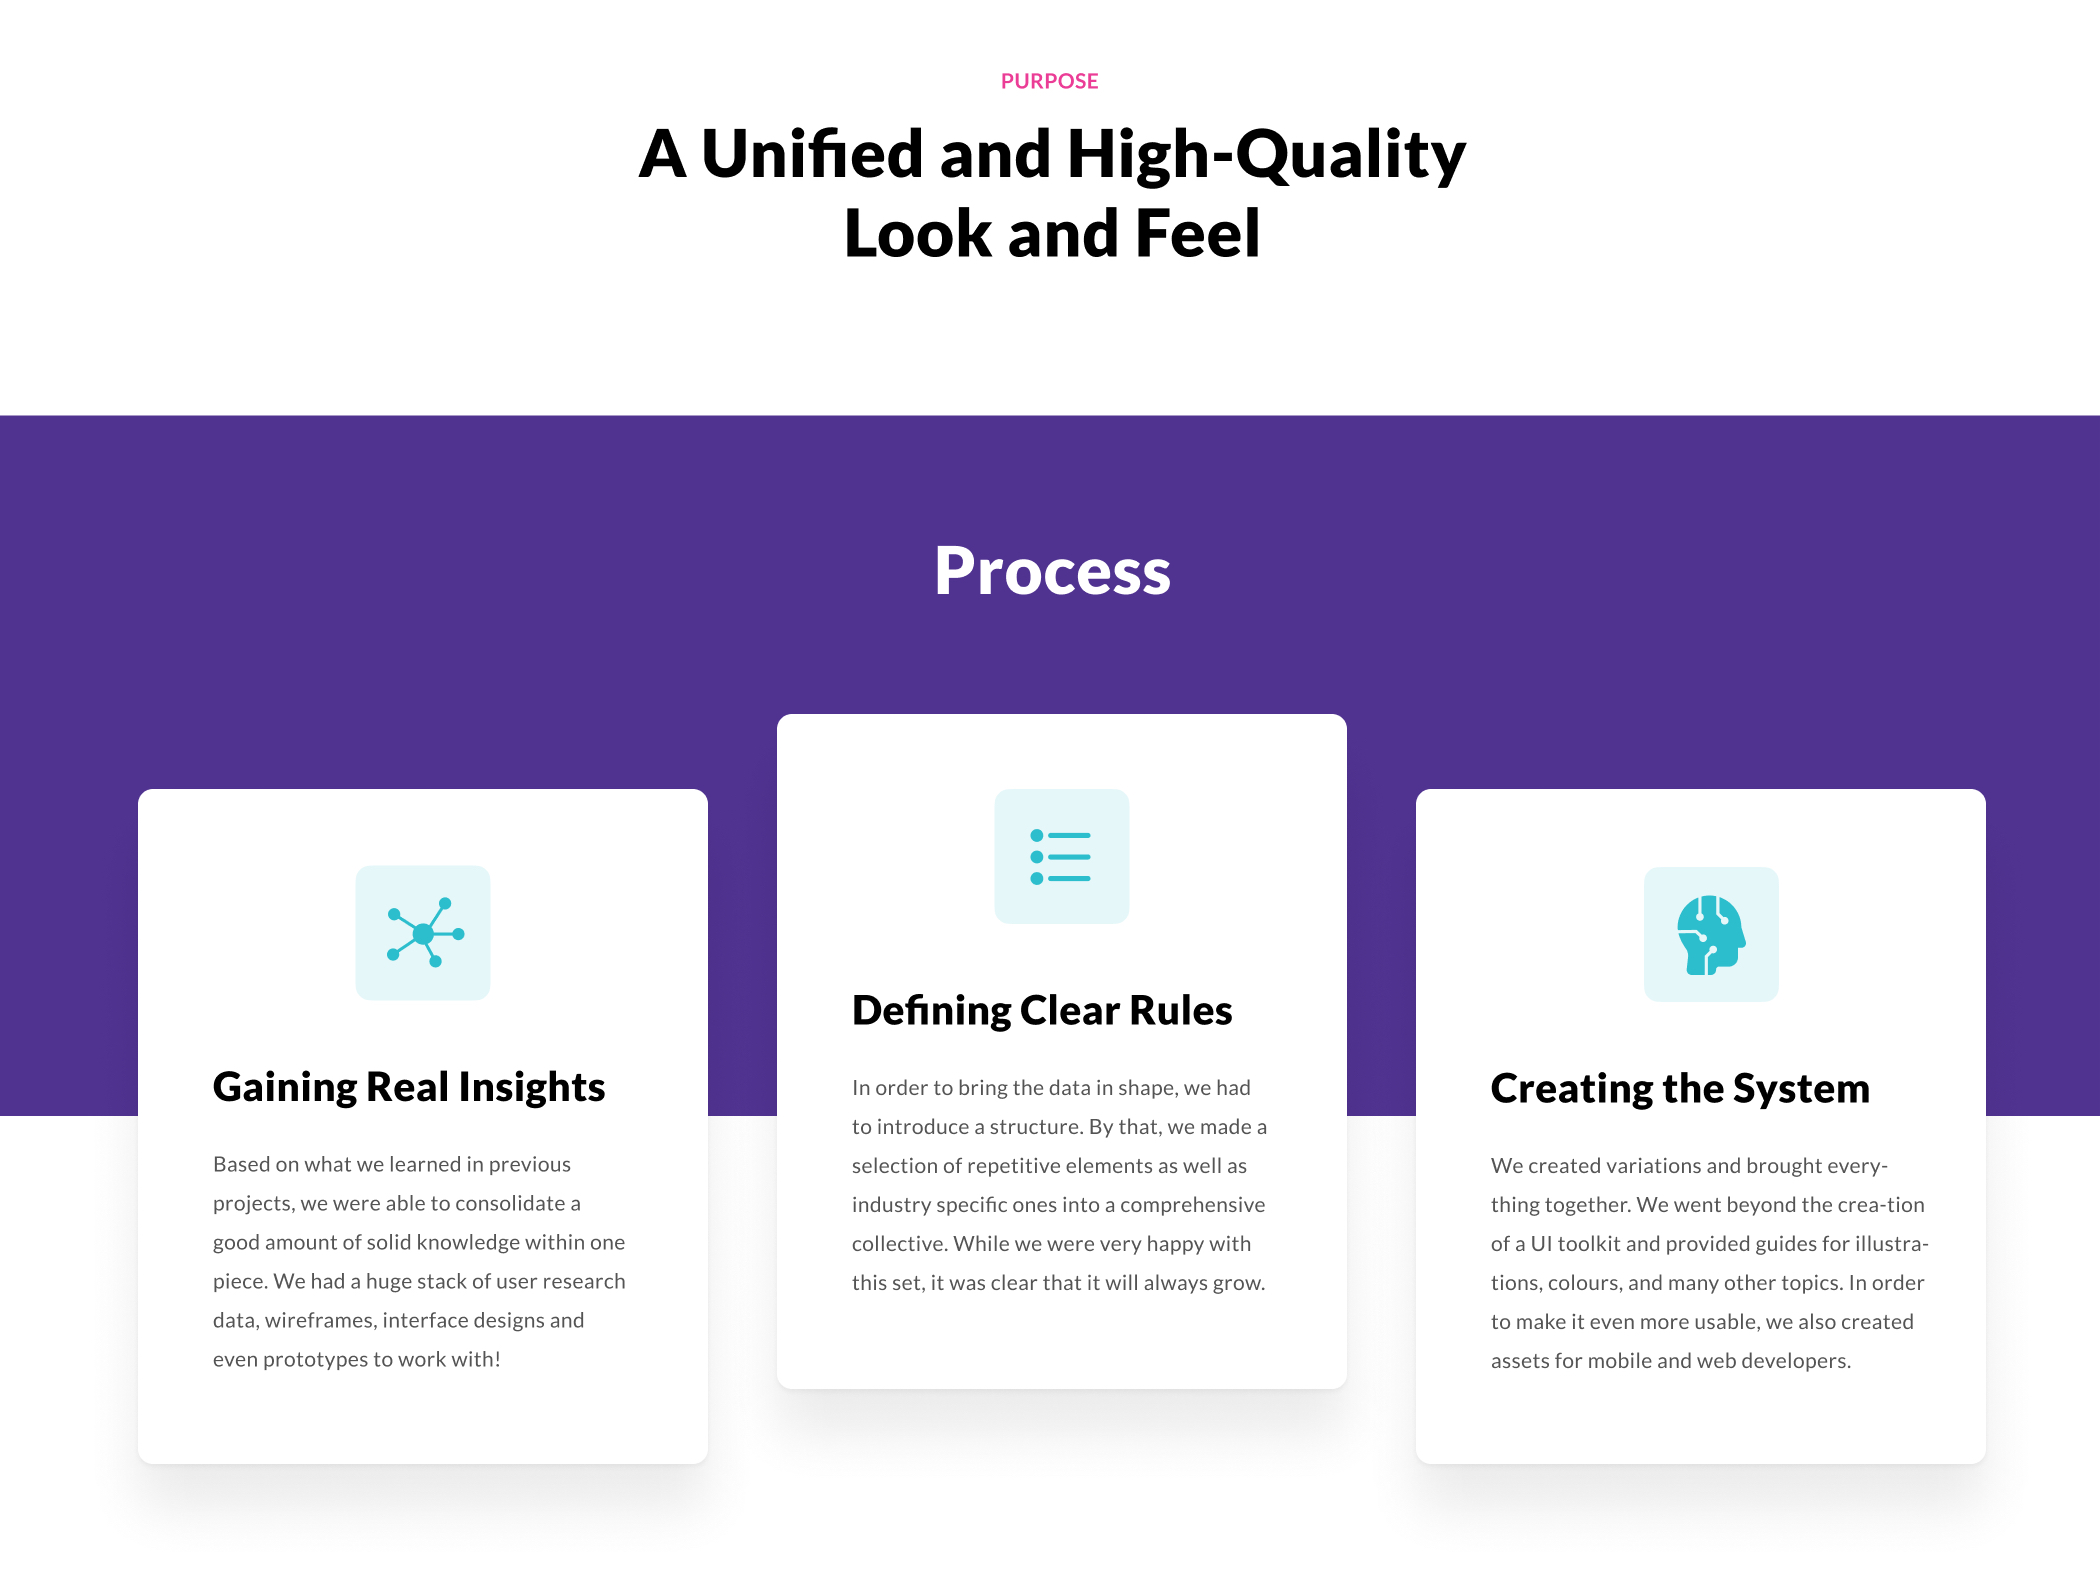 Liquid Design System - Use Liquid to create and develop digital products to make science faster, treatments more personalized, and everyday work more enjoyable.